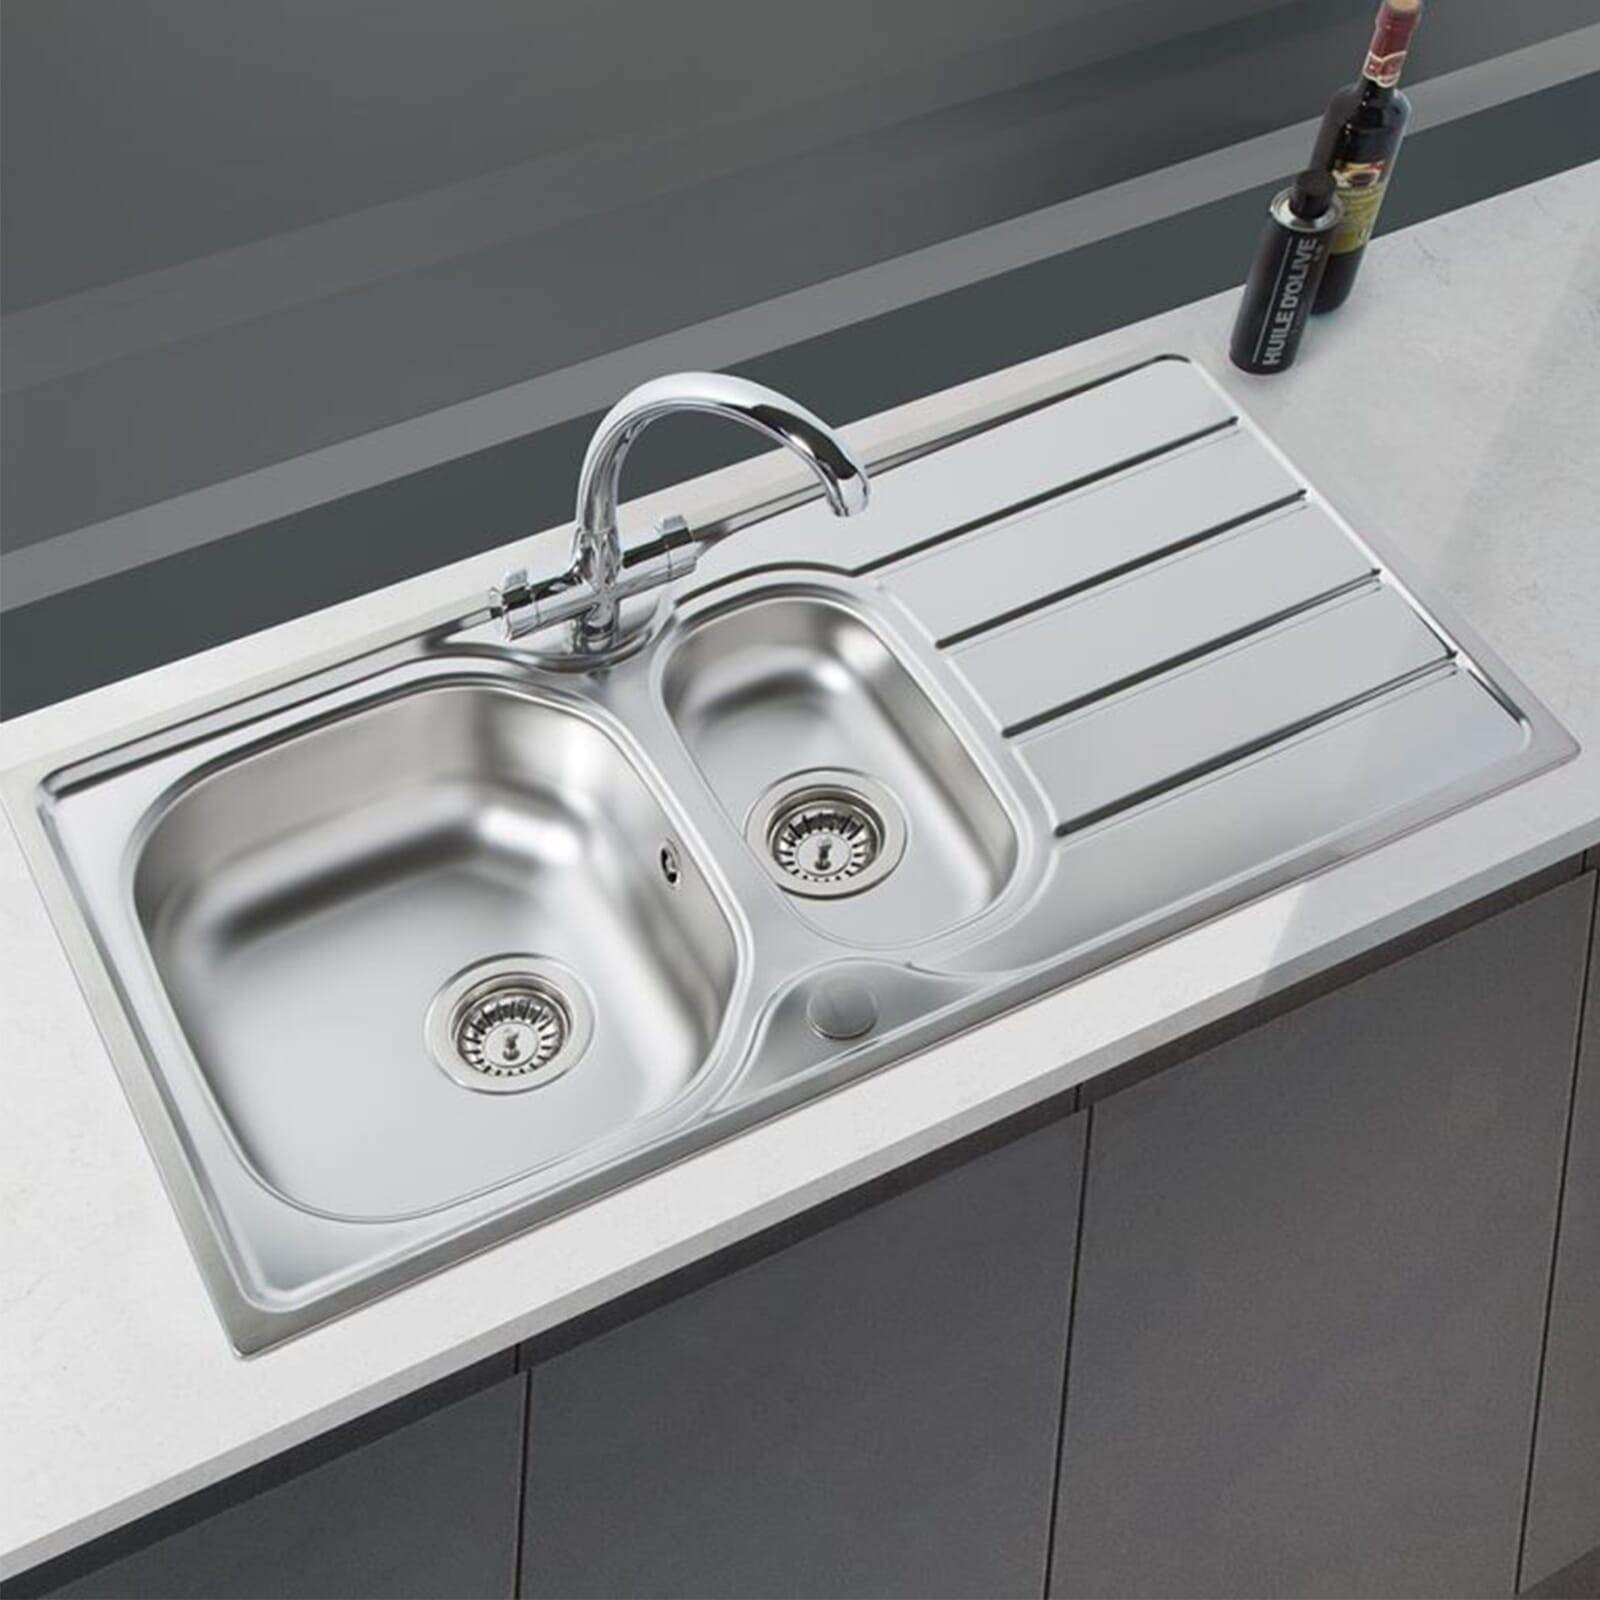 Sia 1 5 Bowl Reversible Stainless Steel Kitchen Sink And Waste Kit W965 X D500mm Buy Online In Antigua And Barbuda At Desertcart Productid 149993938